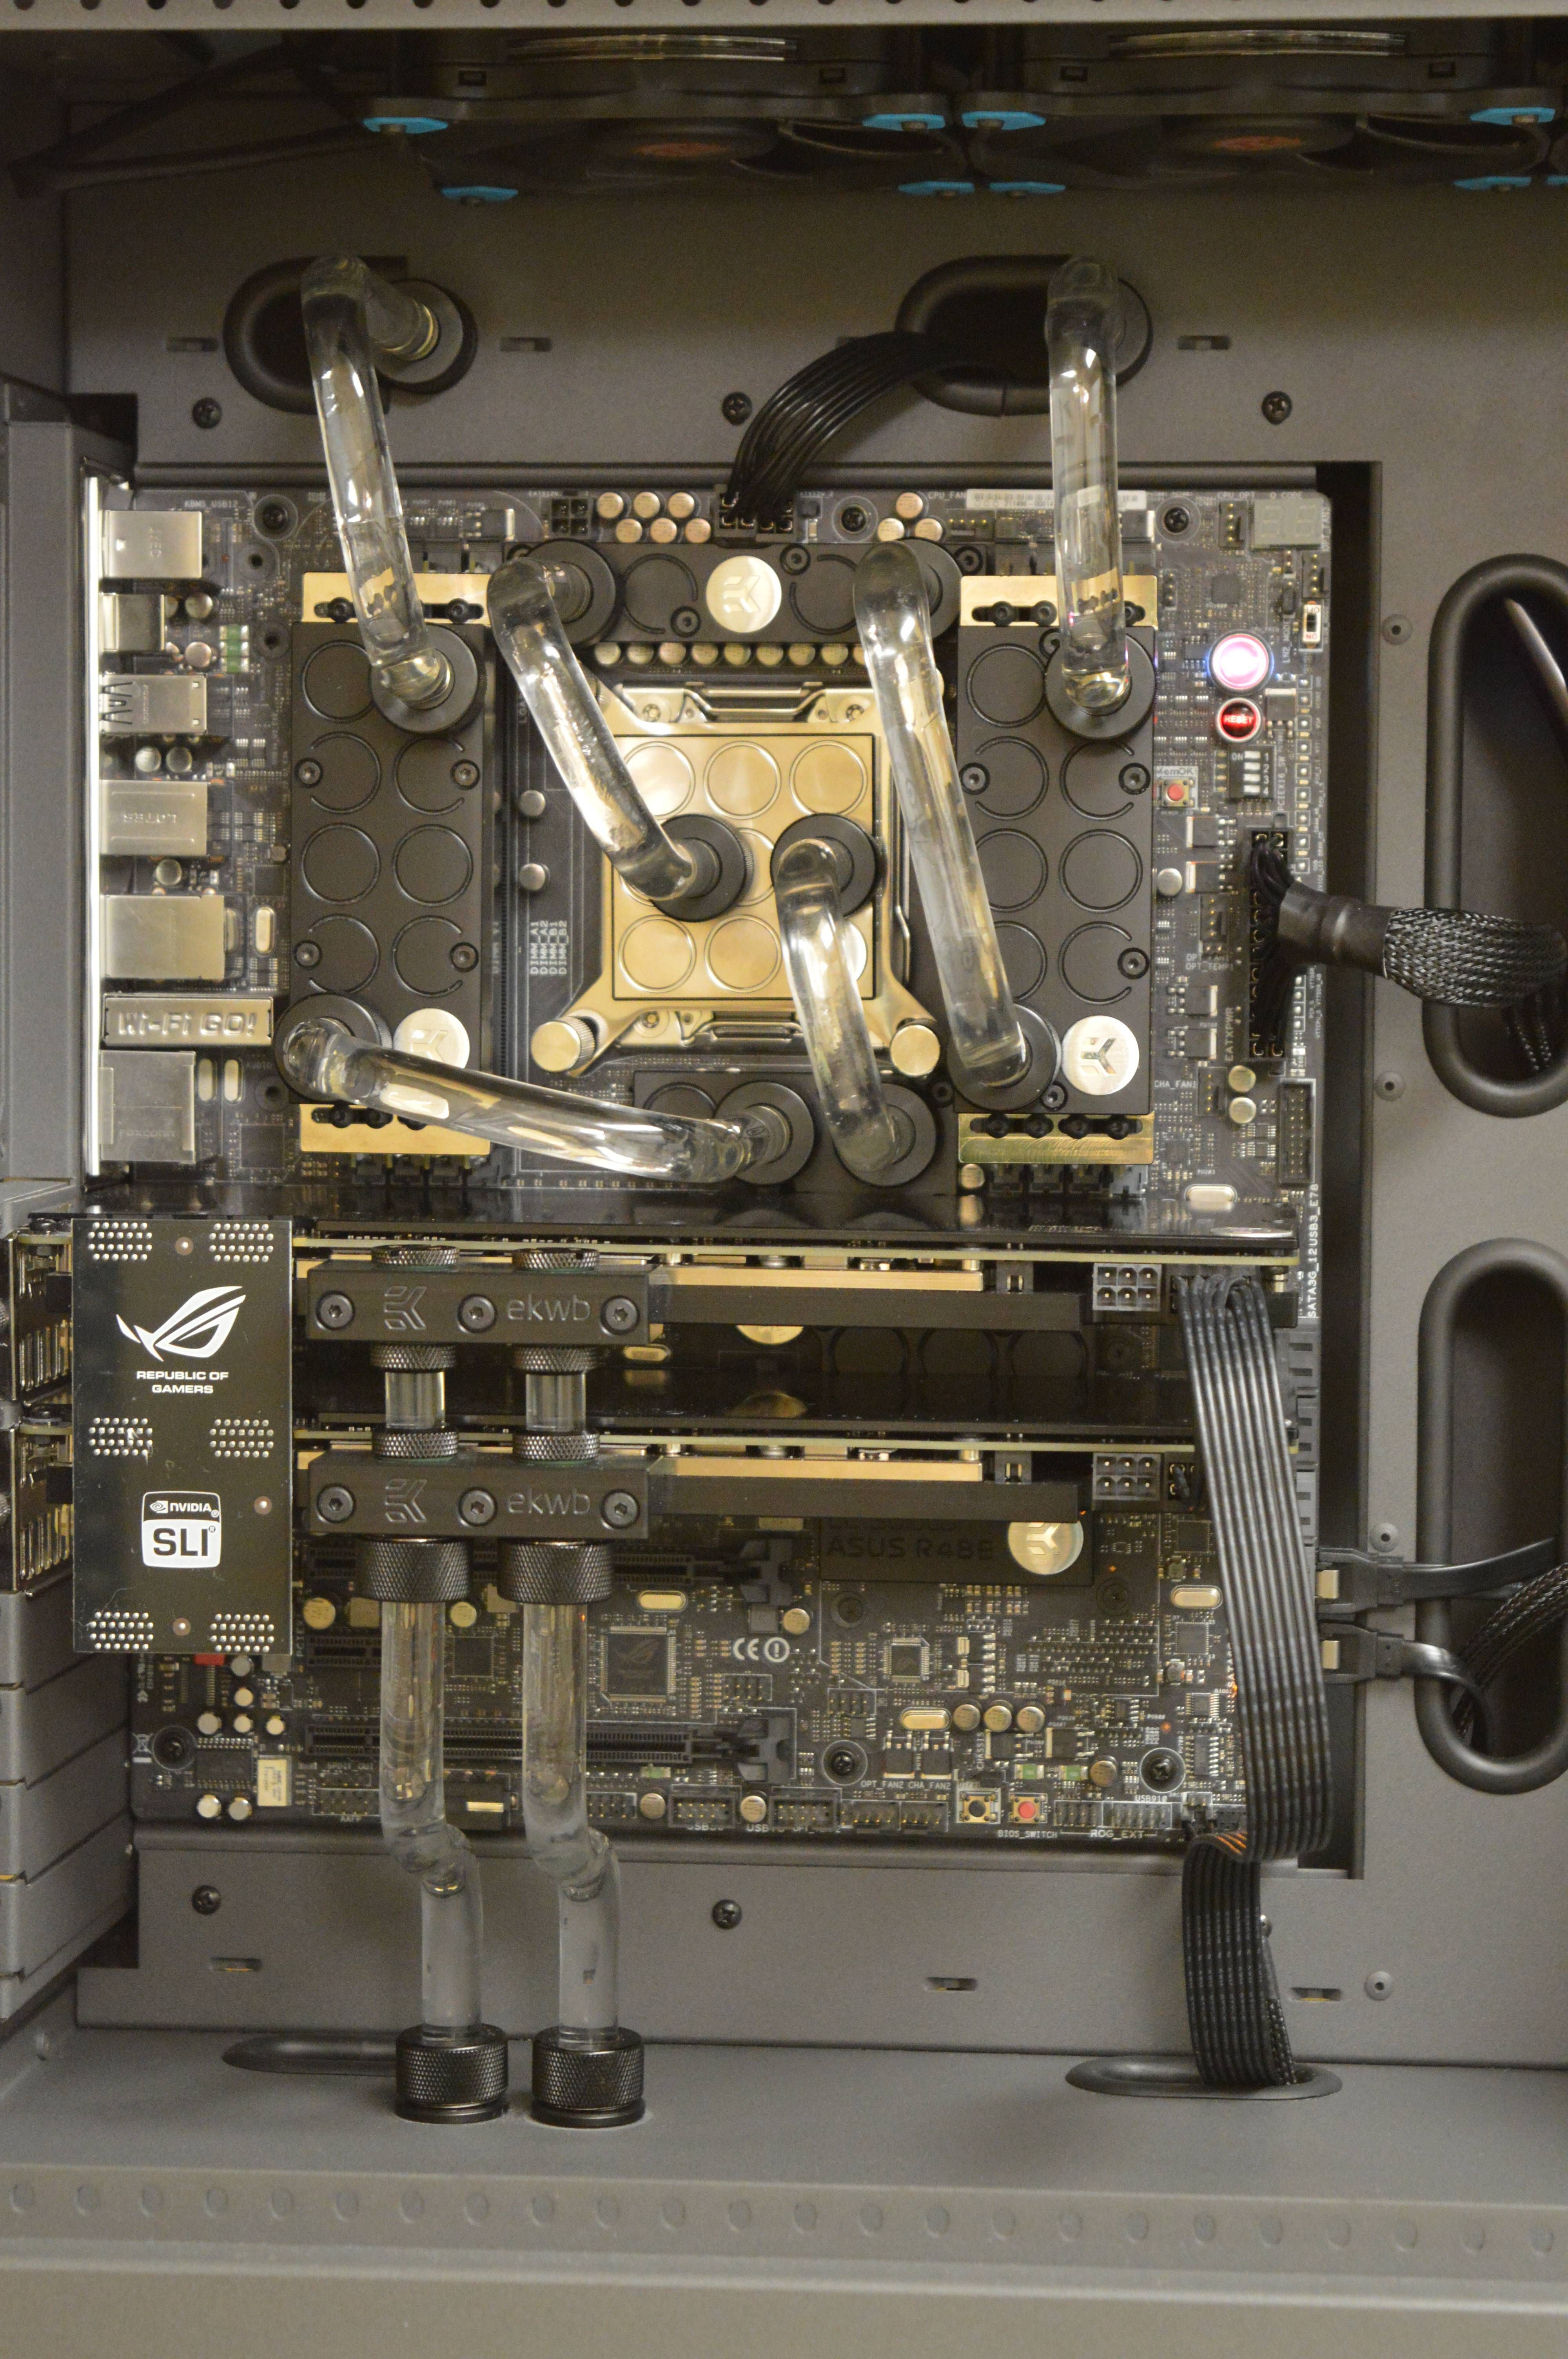 Project Cherenkov - Hard Acrylic Liquid Cooled PC Build in ...